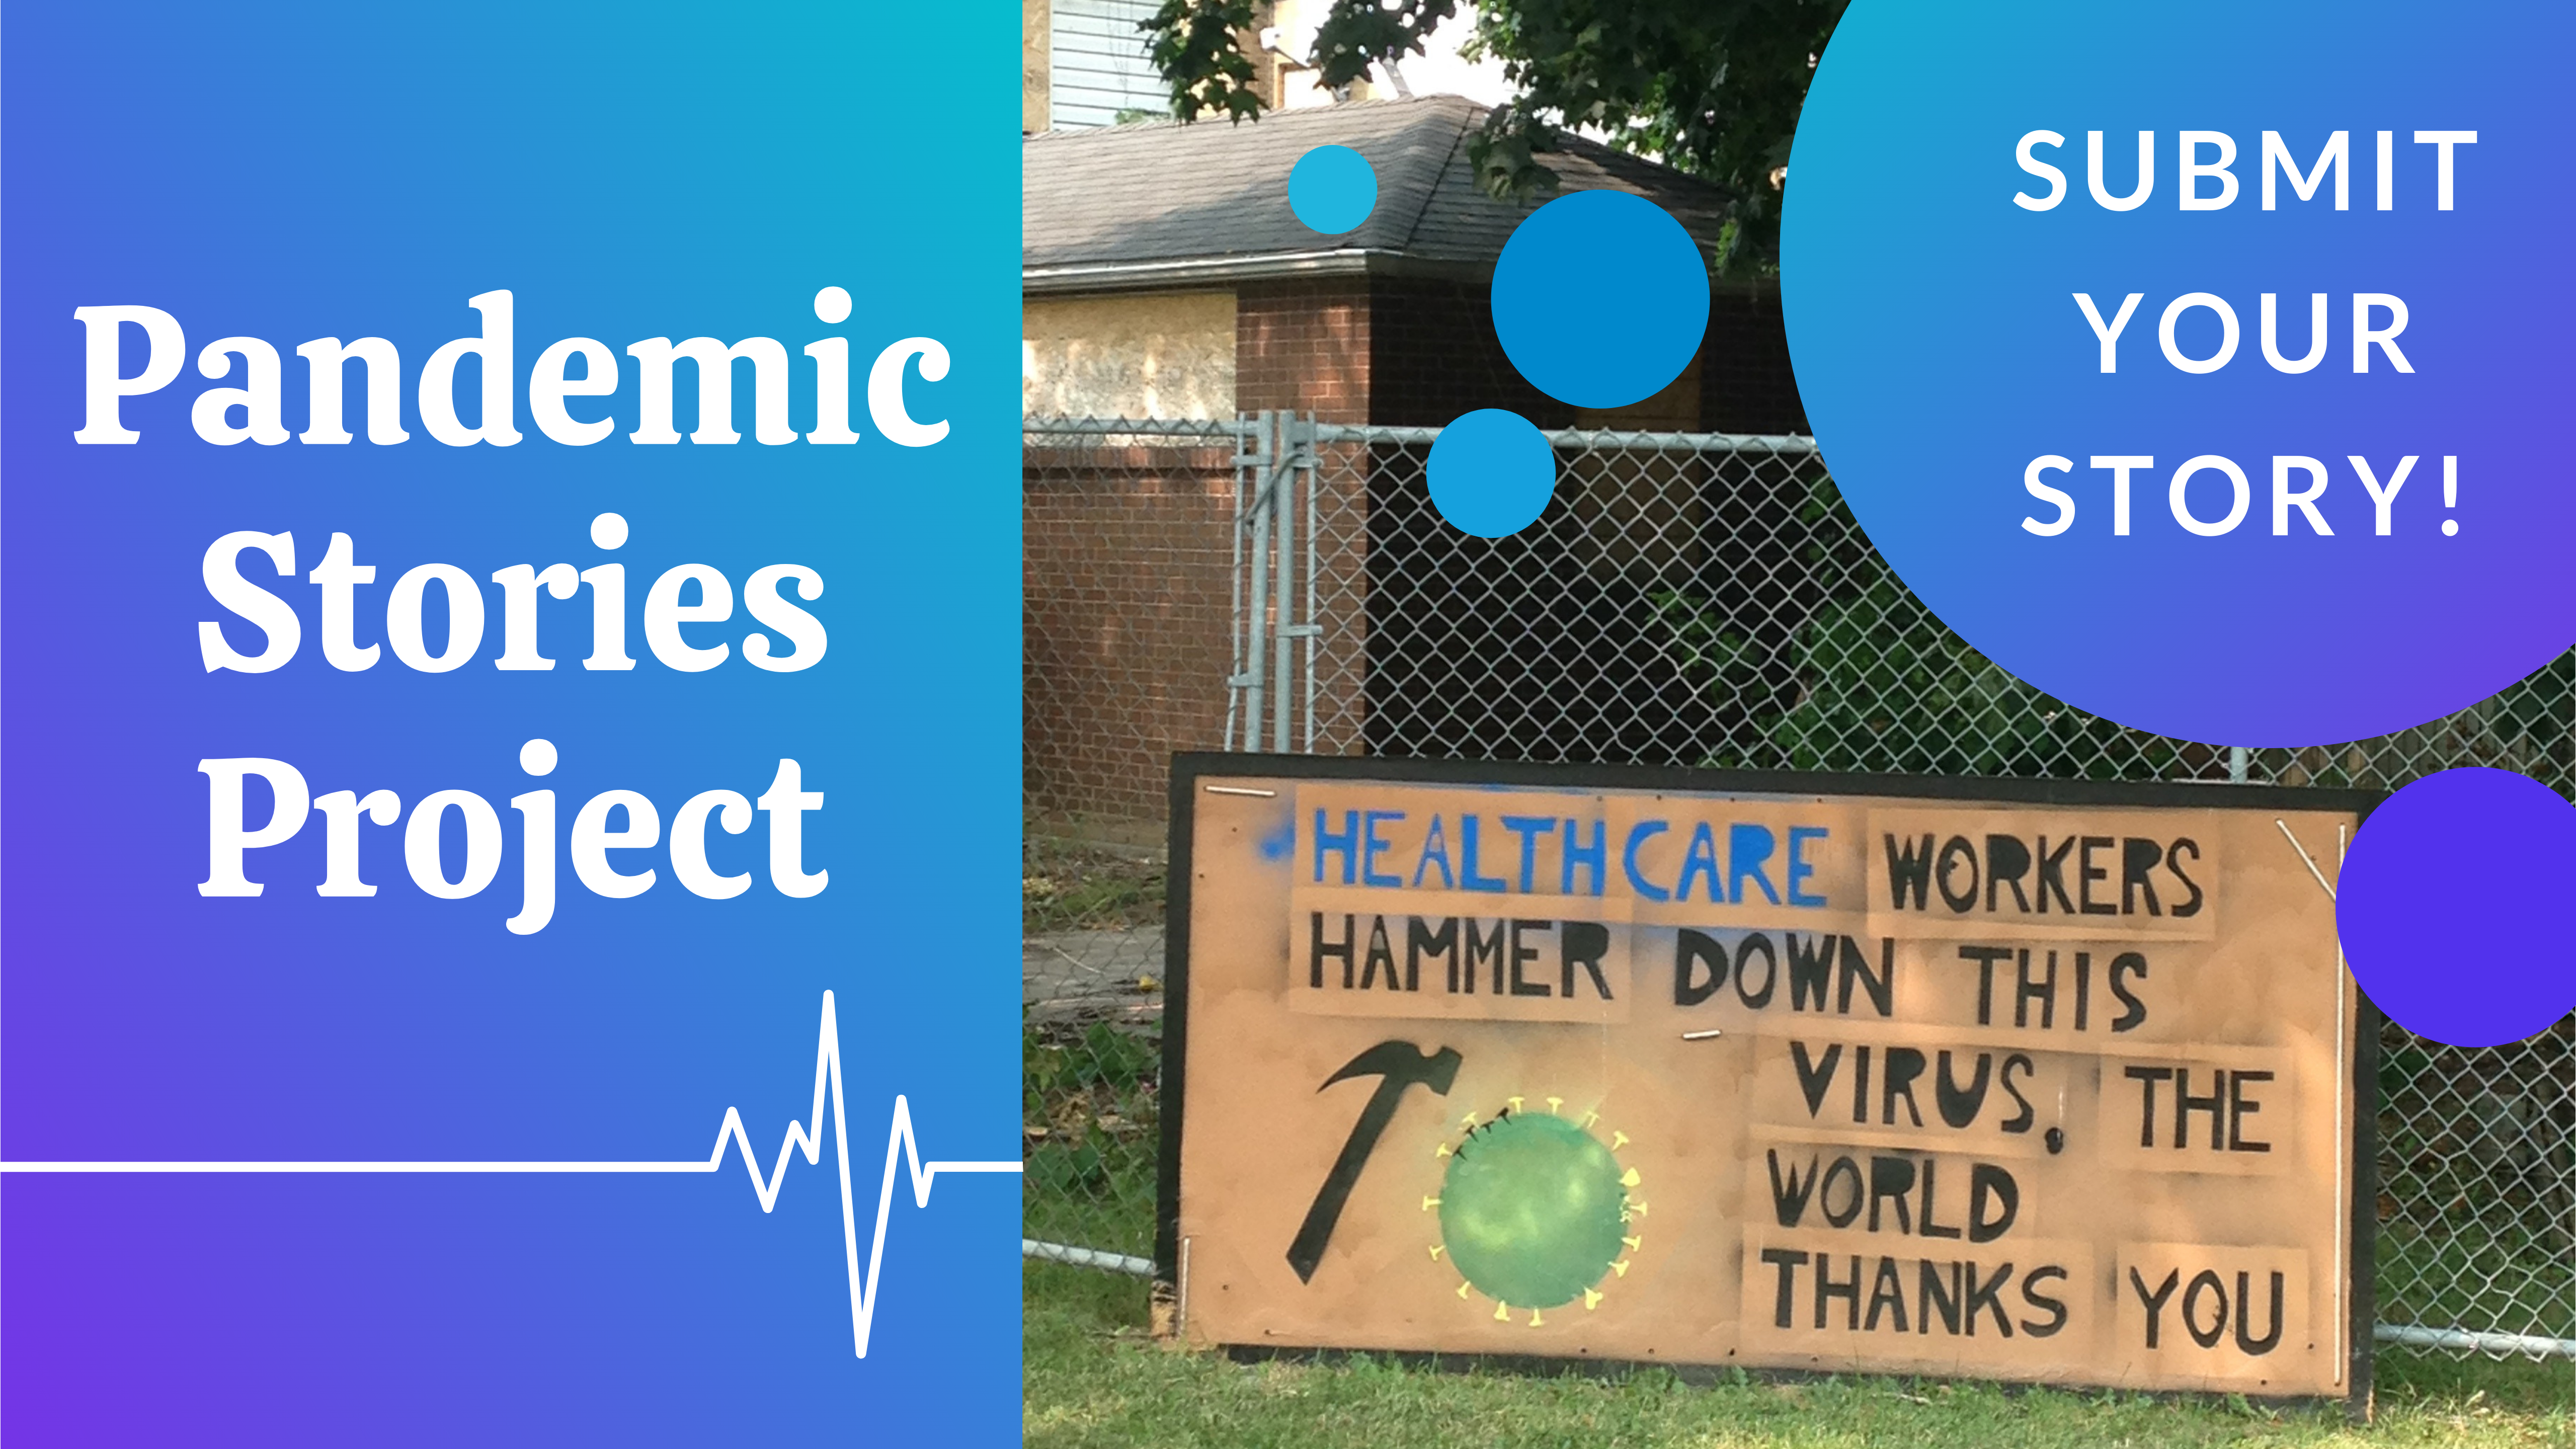 Pandemic Stories Project